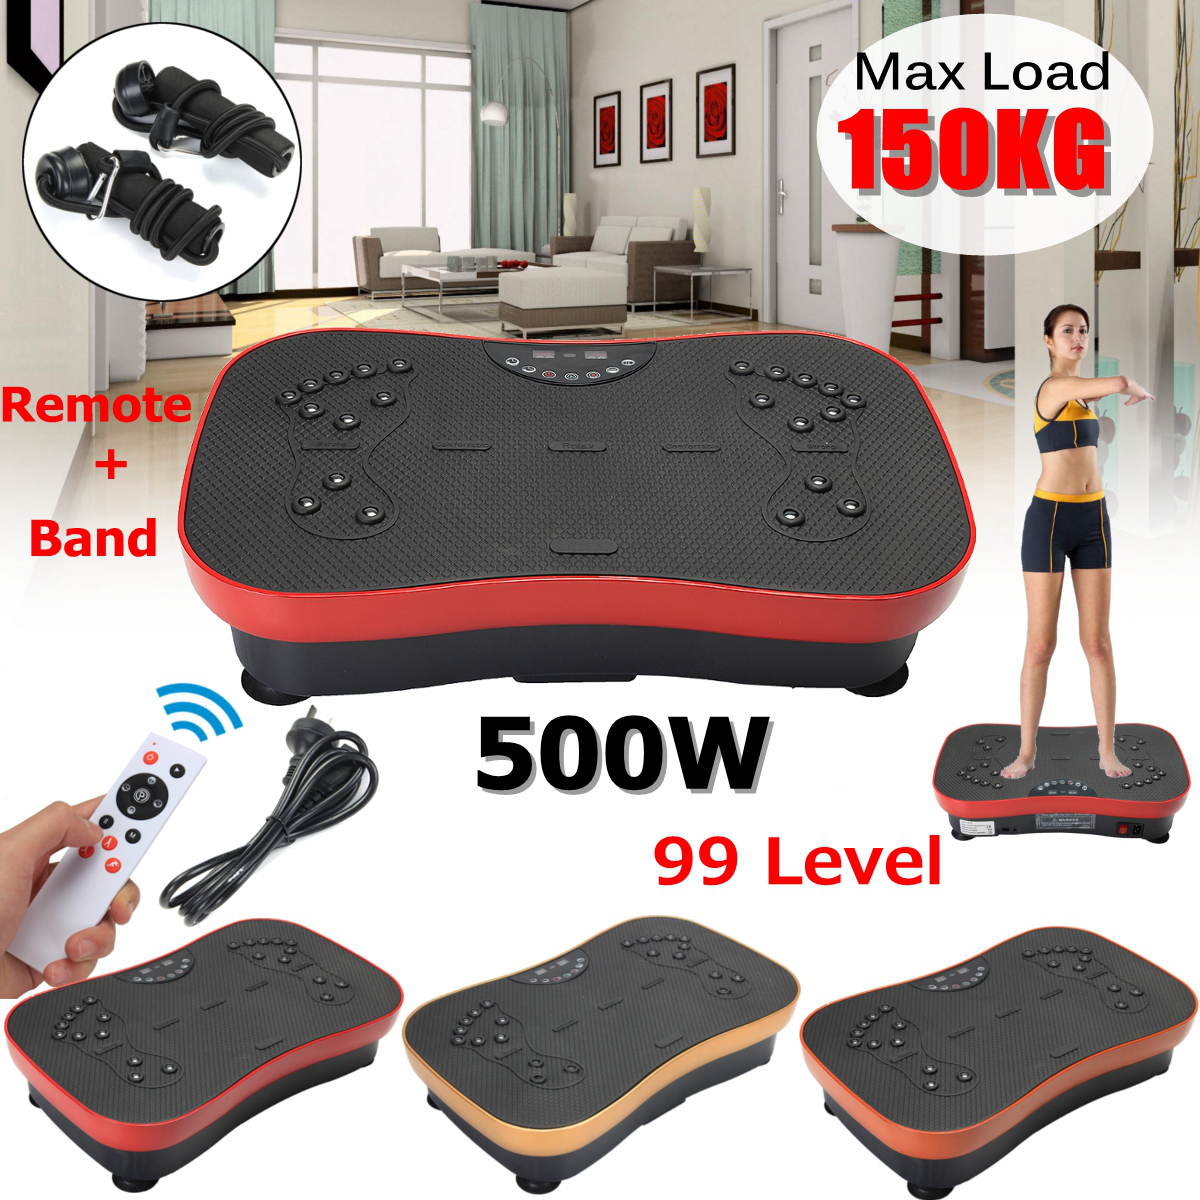 220V 500W Vibration Machine Exercise Platform Massager Body Fitness Remote exercise fitness equipment